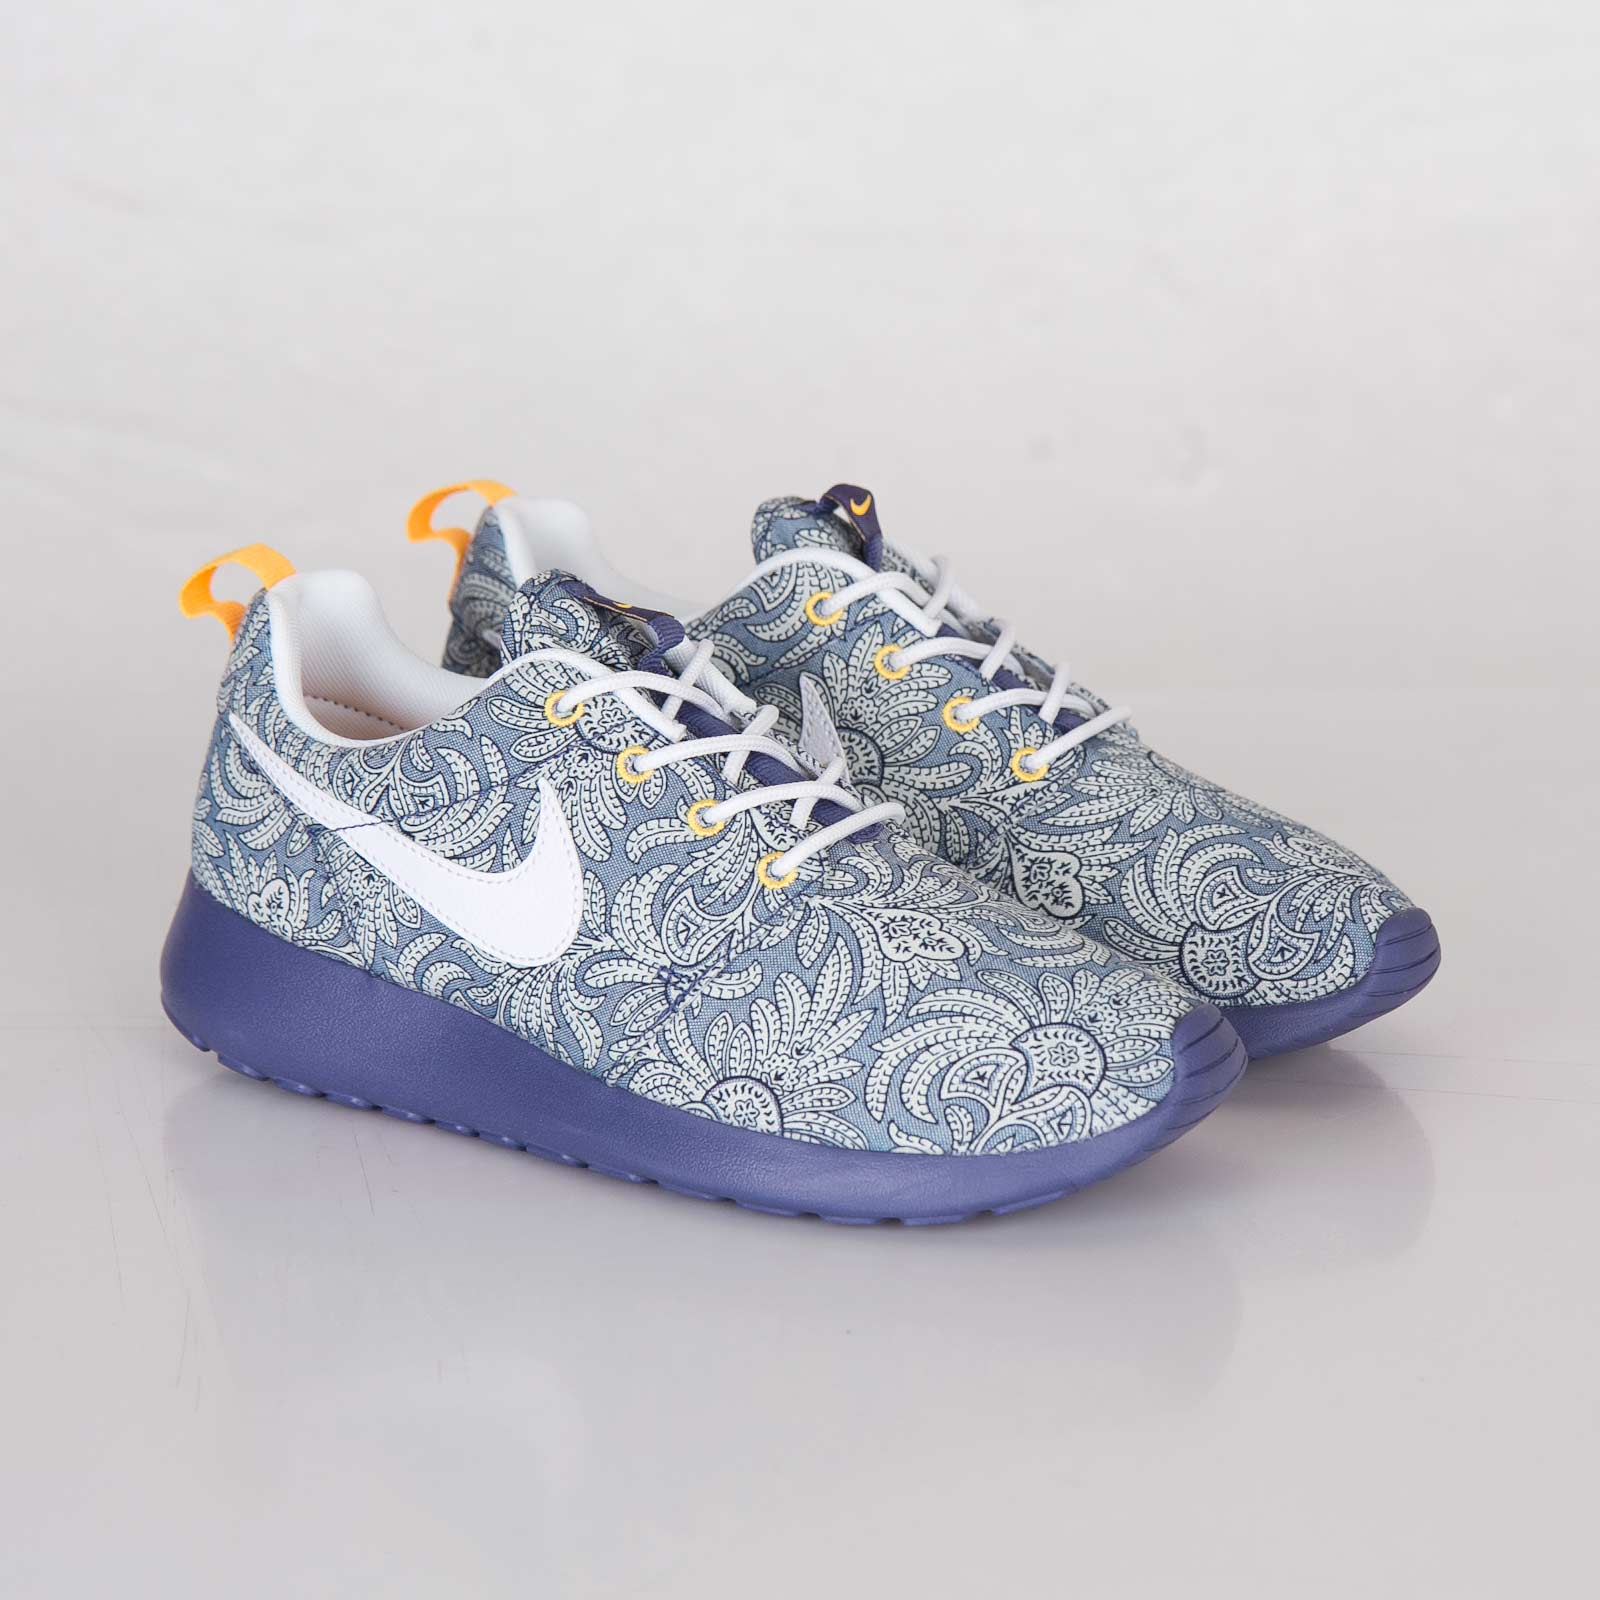 sports shoes f527c 021c7 Nike Wmns Roshe Run Liberty QS